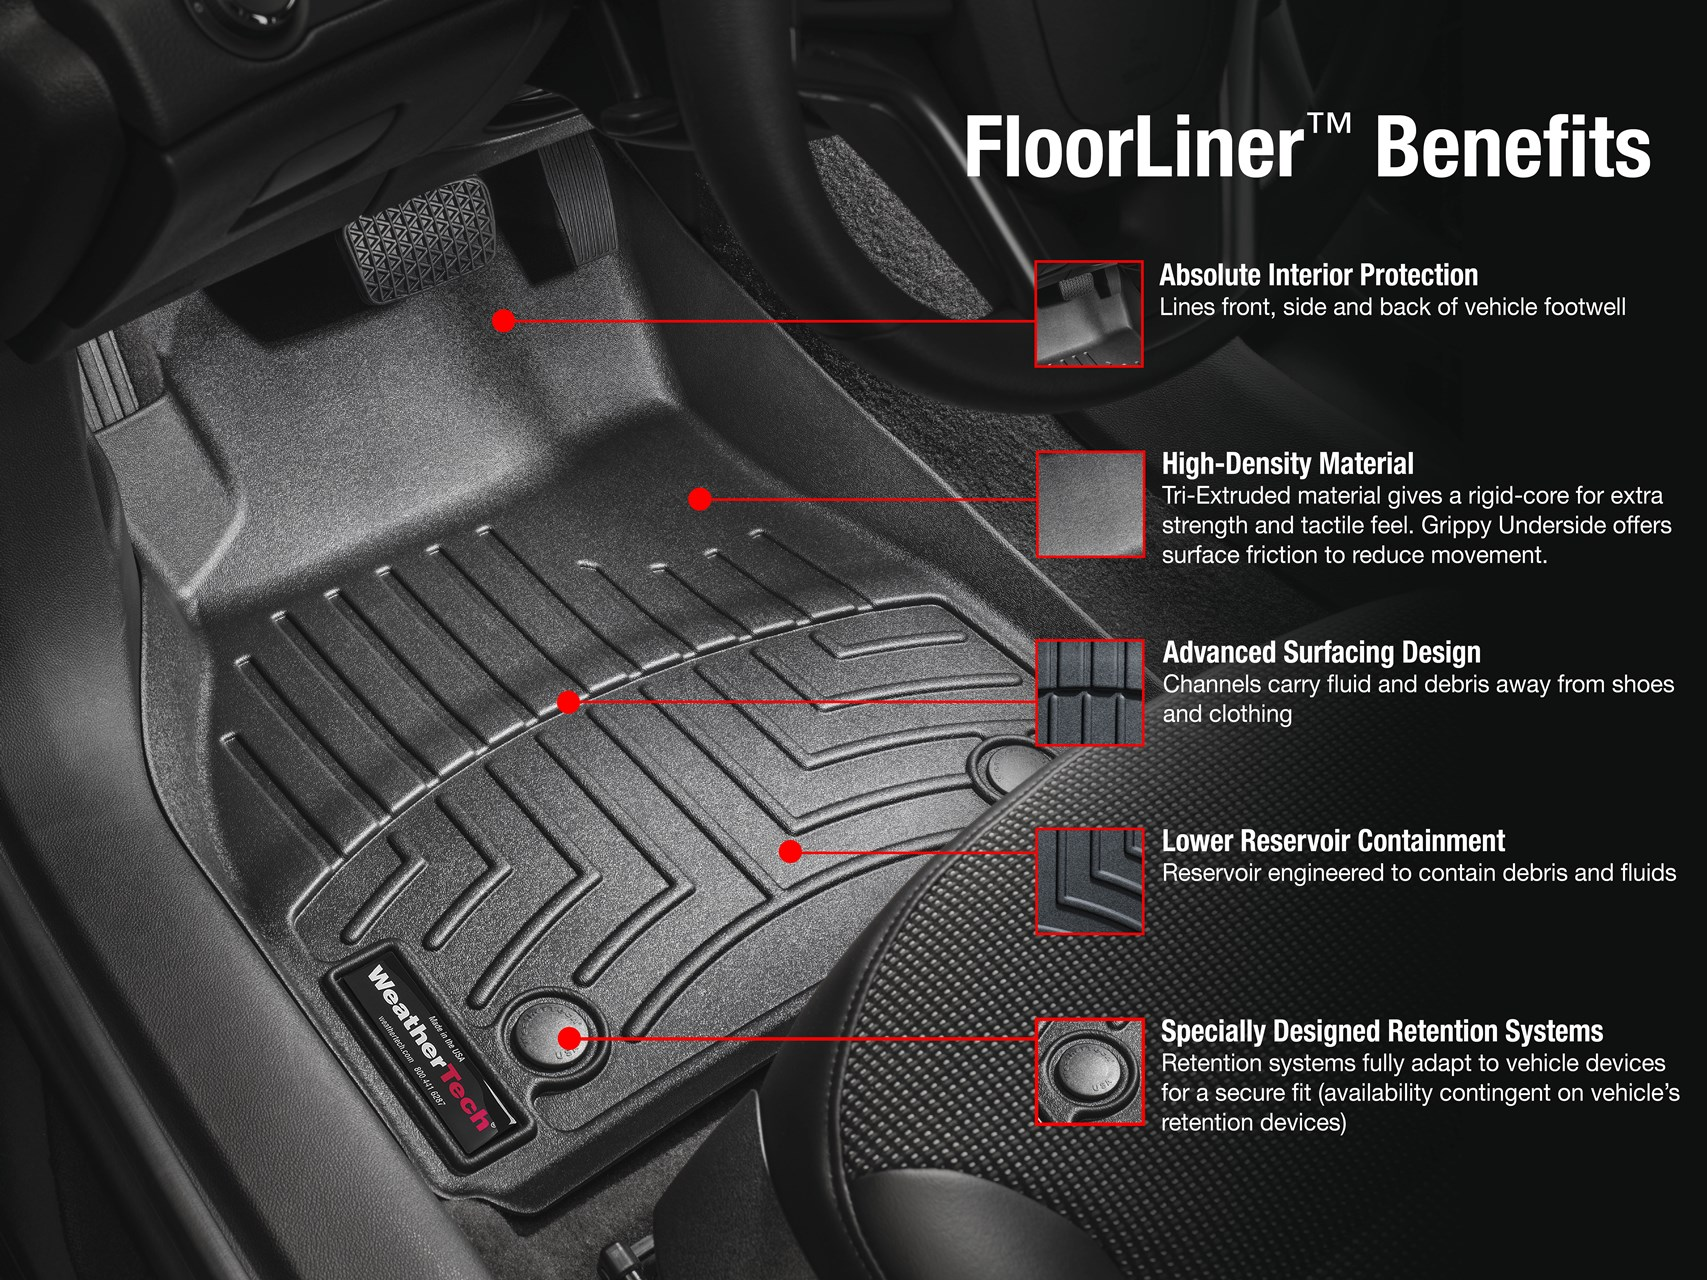 floorlinerbenefitswebgraphic-08161.jpg